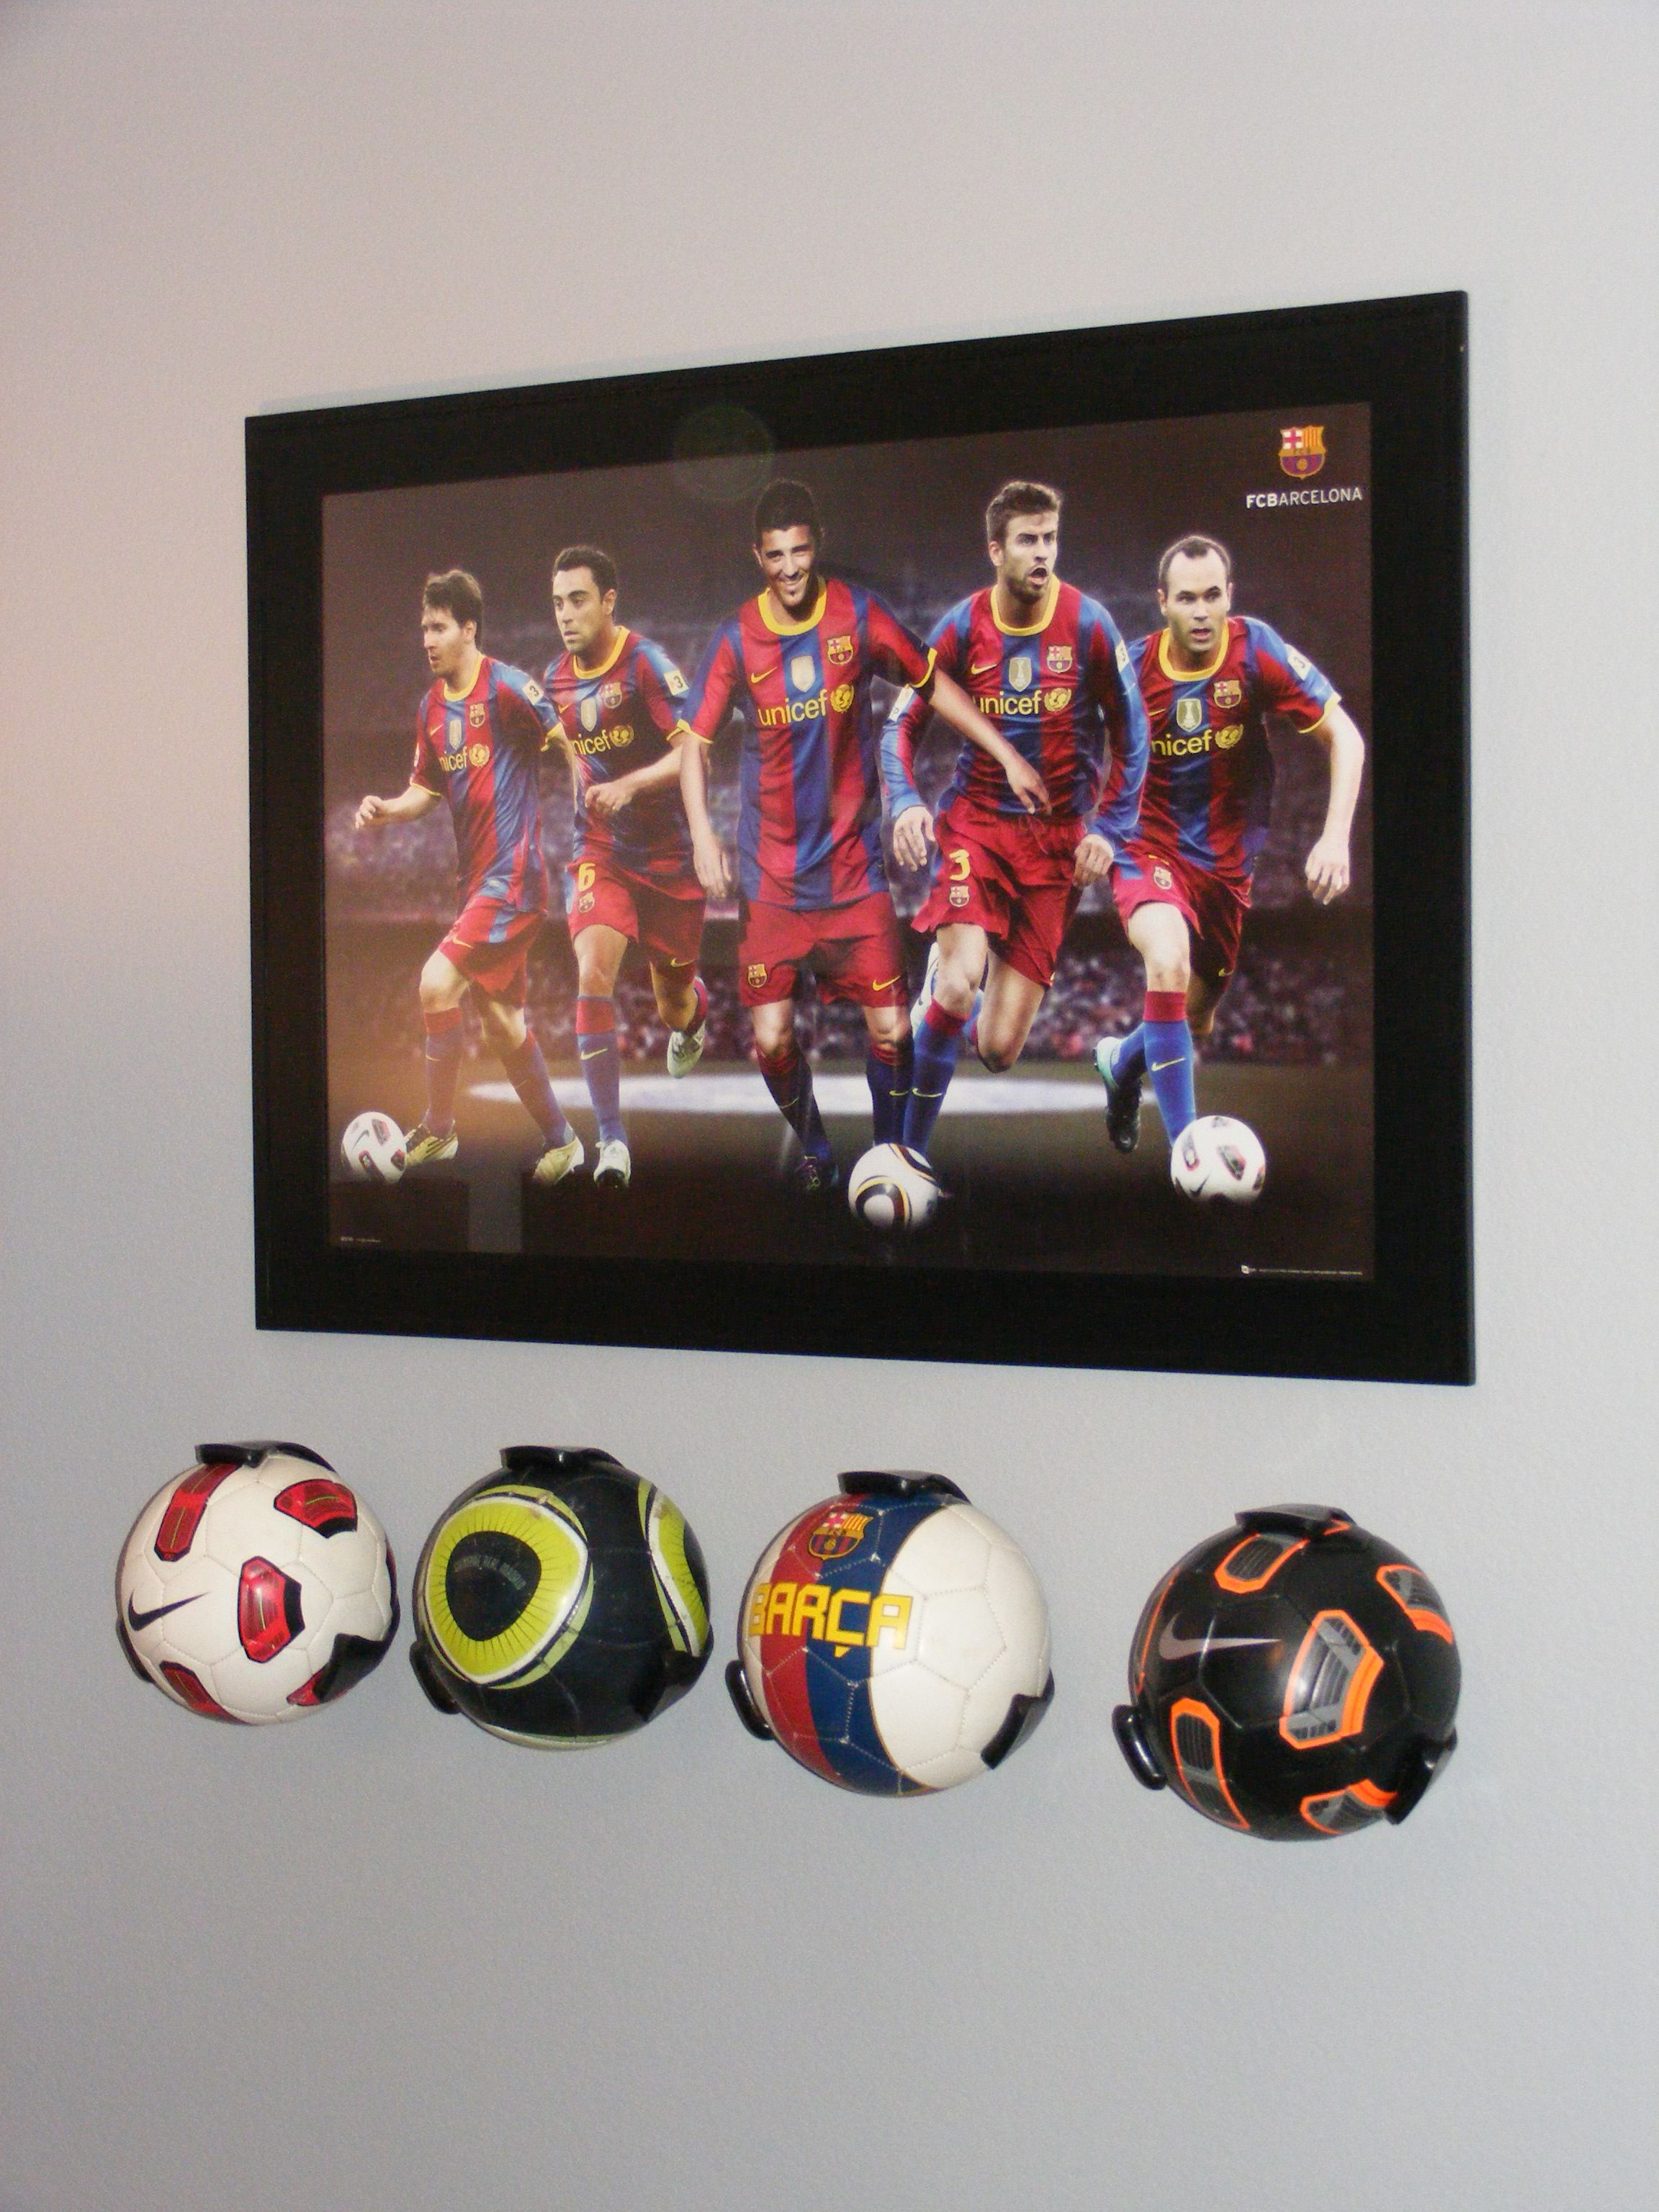 Soccer Bathroom Accessories Macs Room Cool Soccer Ball Holders From The Container Store